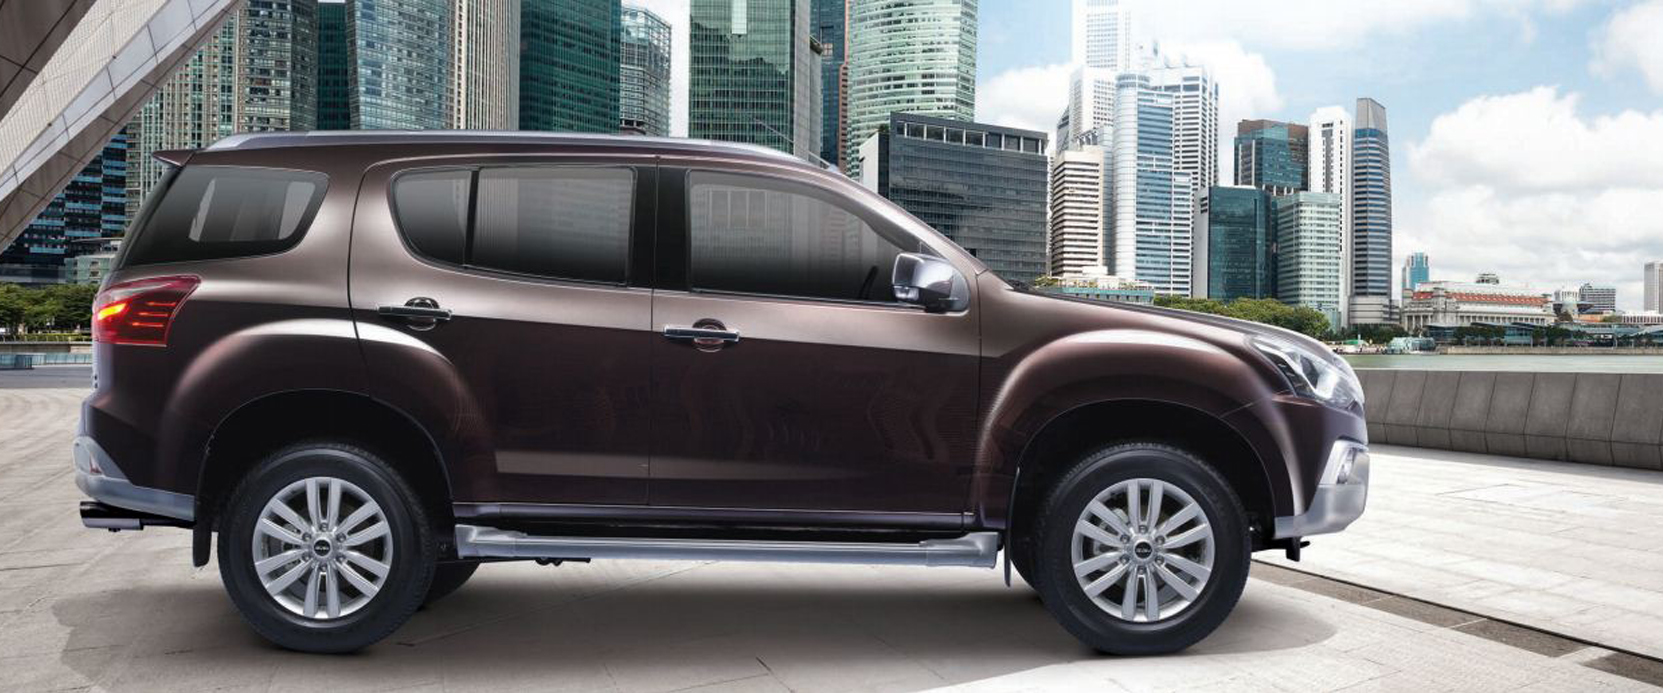 Brown Isuzu mu-x new model